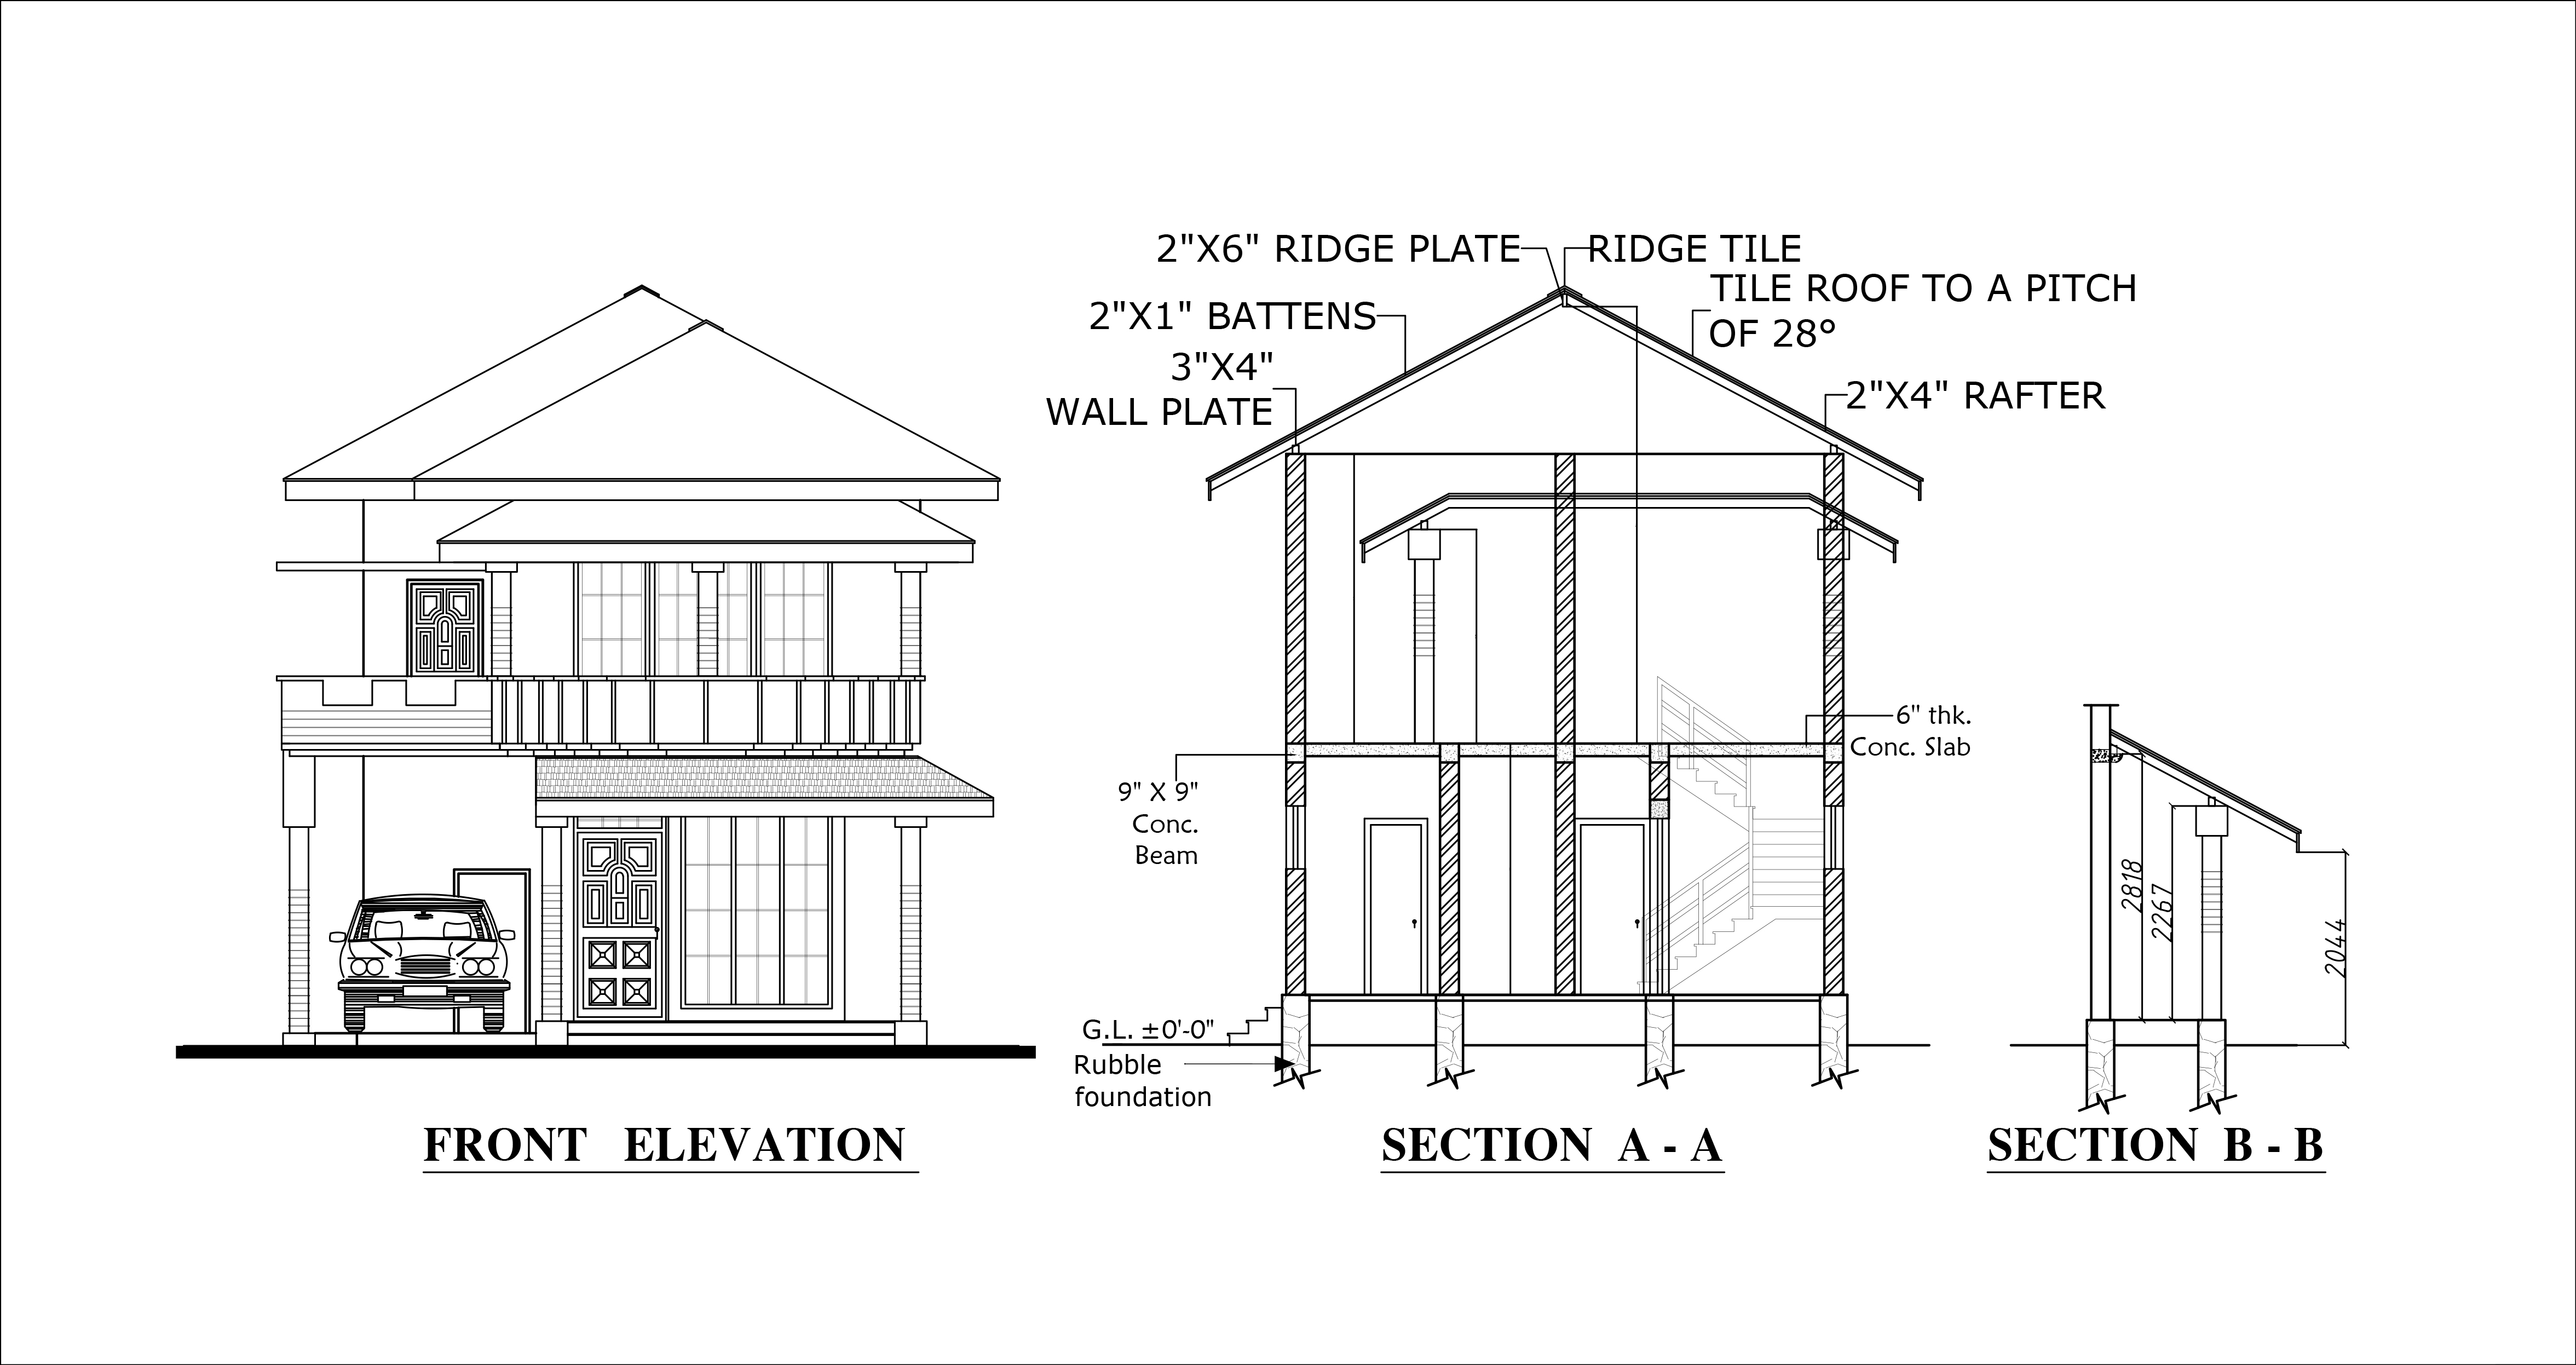 http://www.dwgnet.com/wp-content/uploads/2016/07/House-plan-front-elevation-and-section.jpg